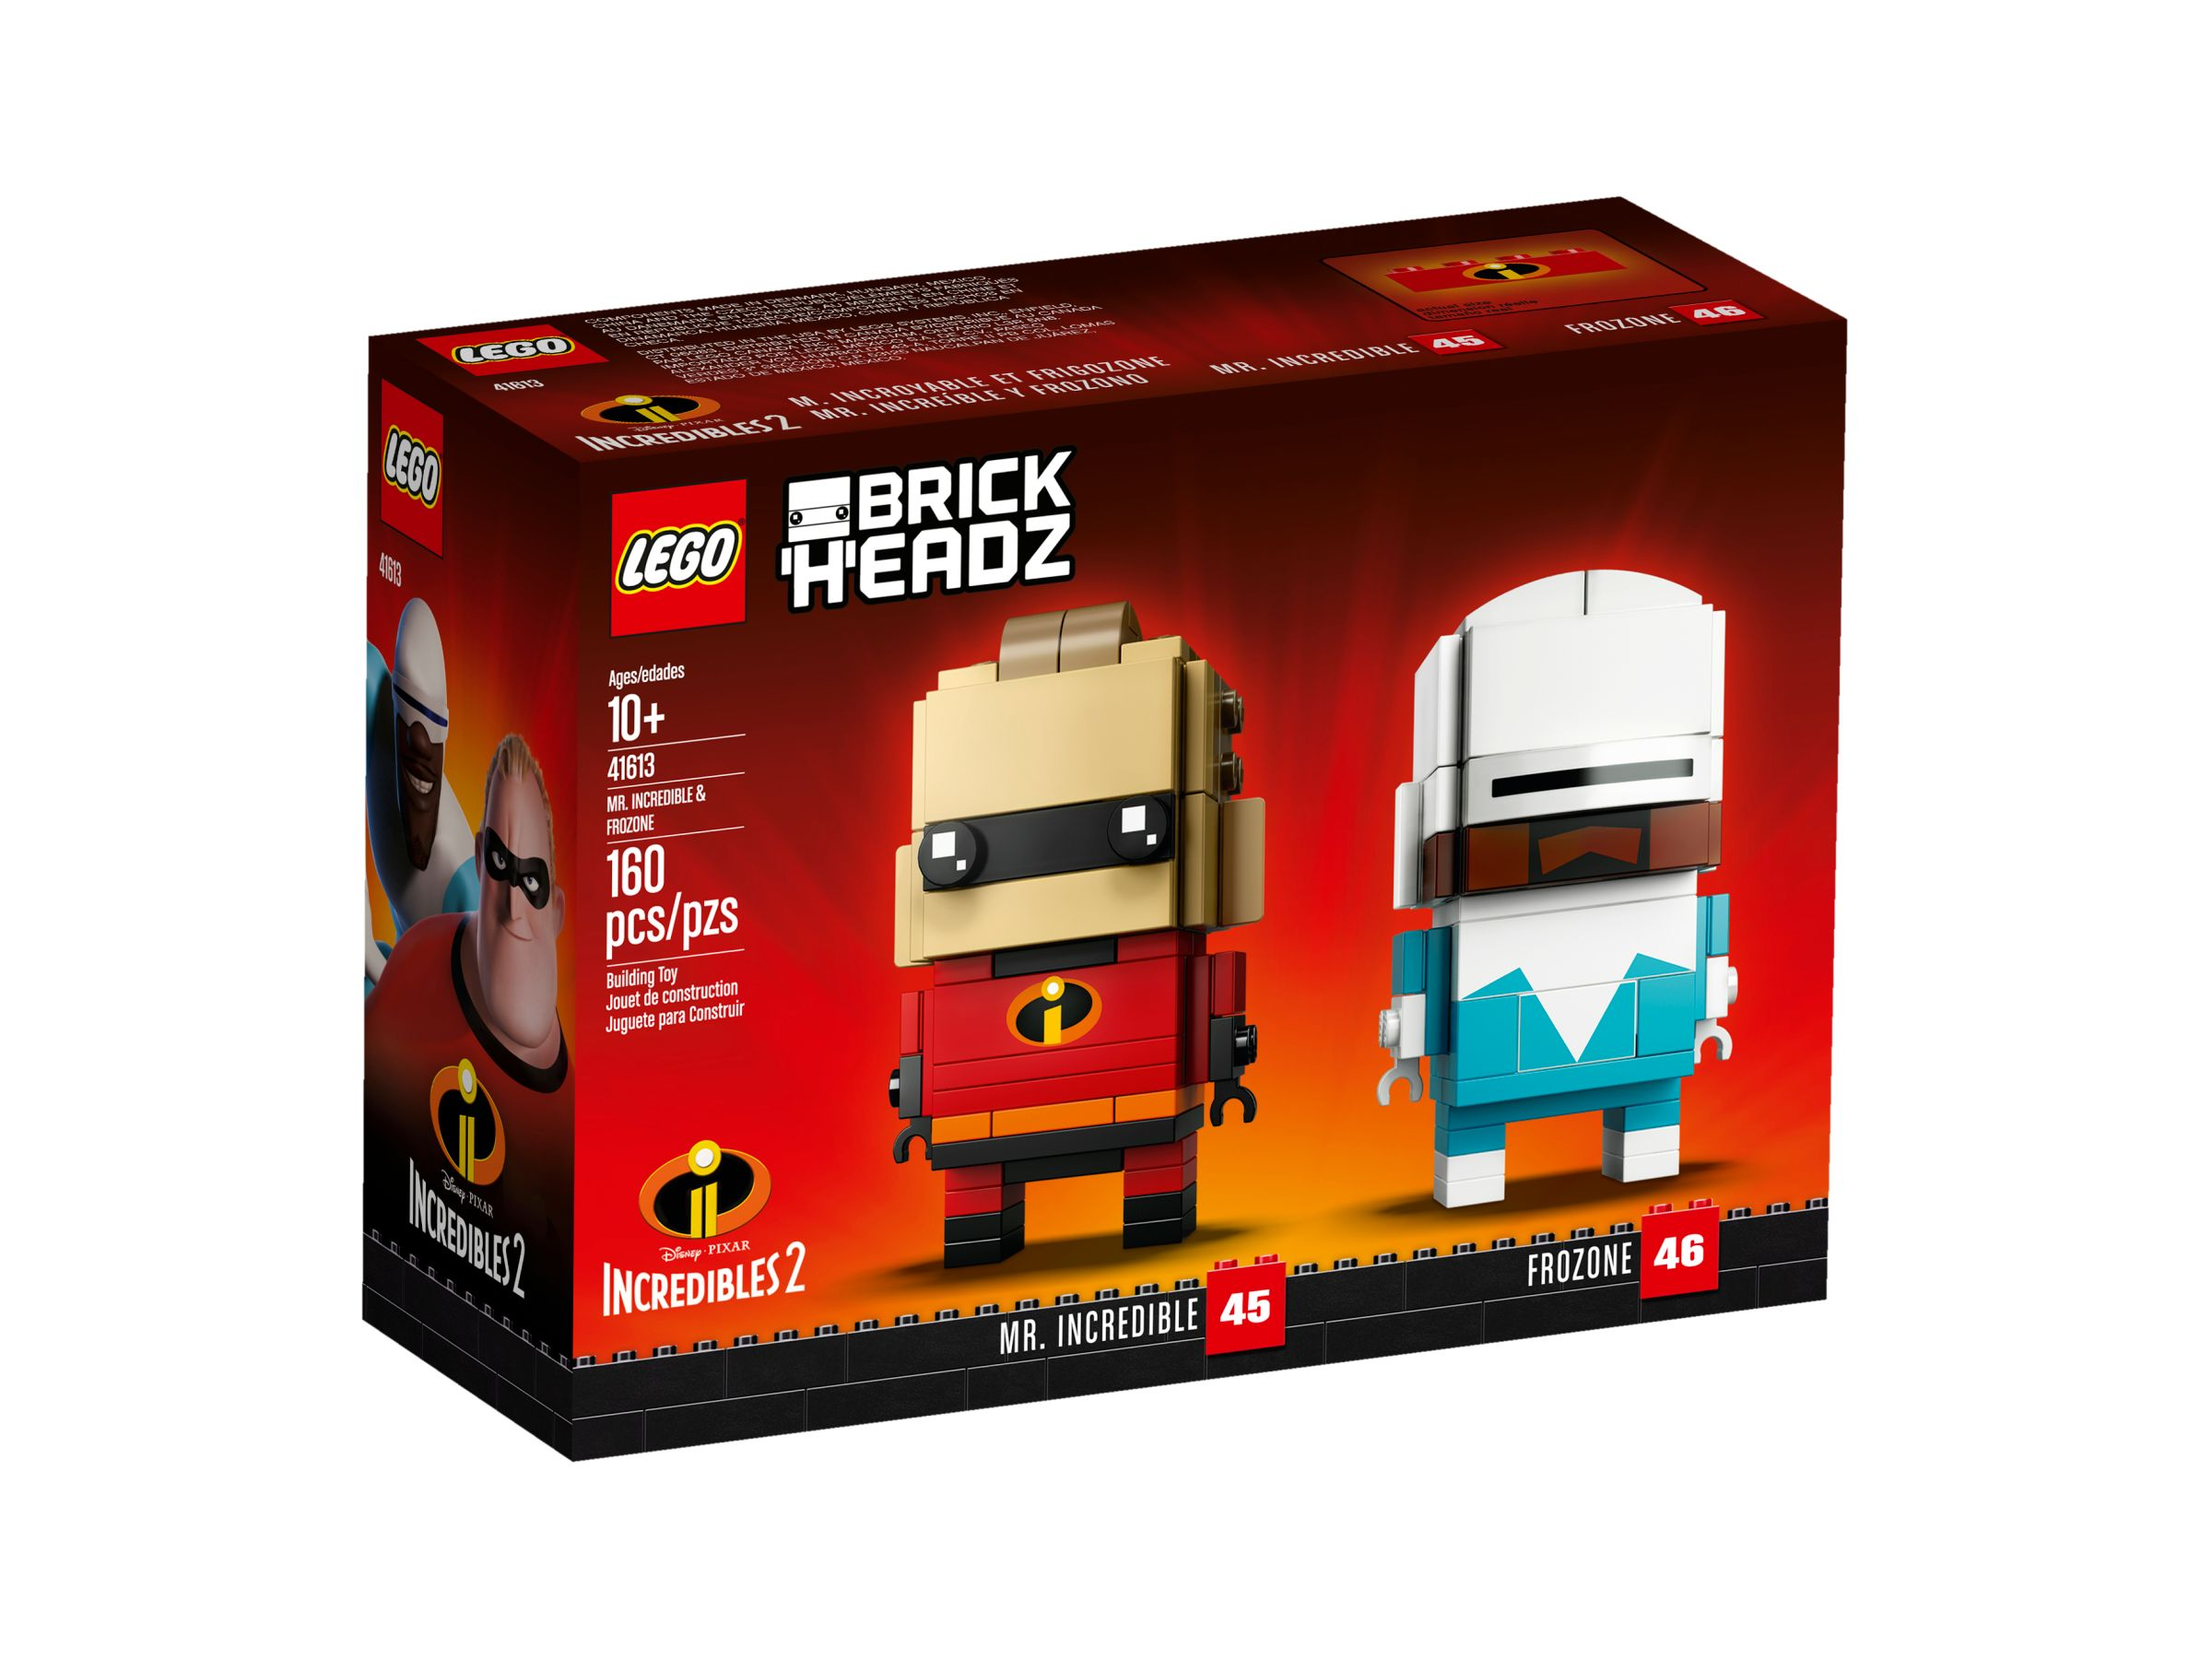 LEGO BrickHeadz 41613 Mr. Incredible und Frozone LEGO_41613_alt1.jpg